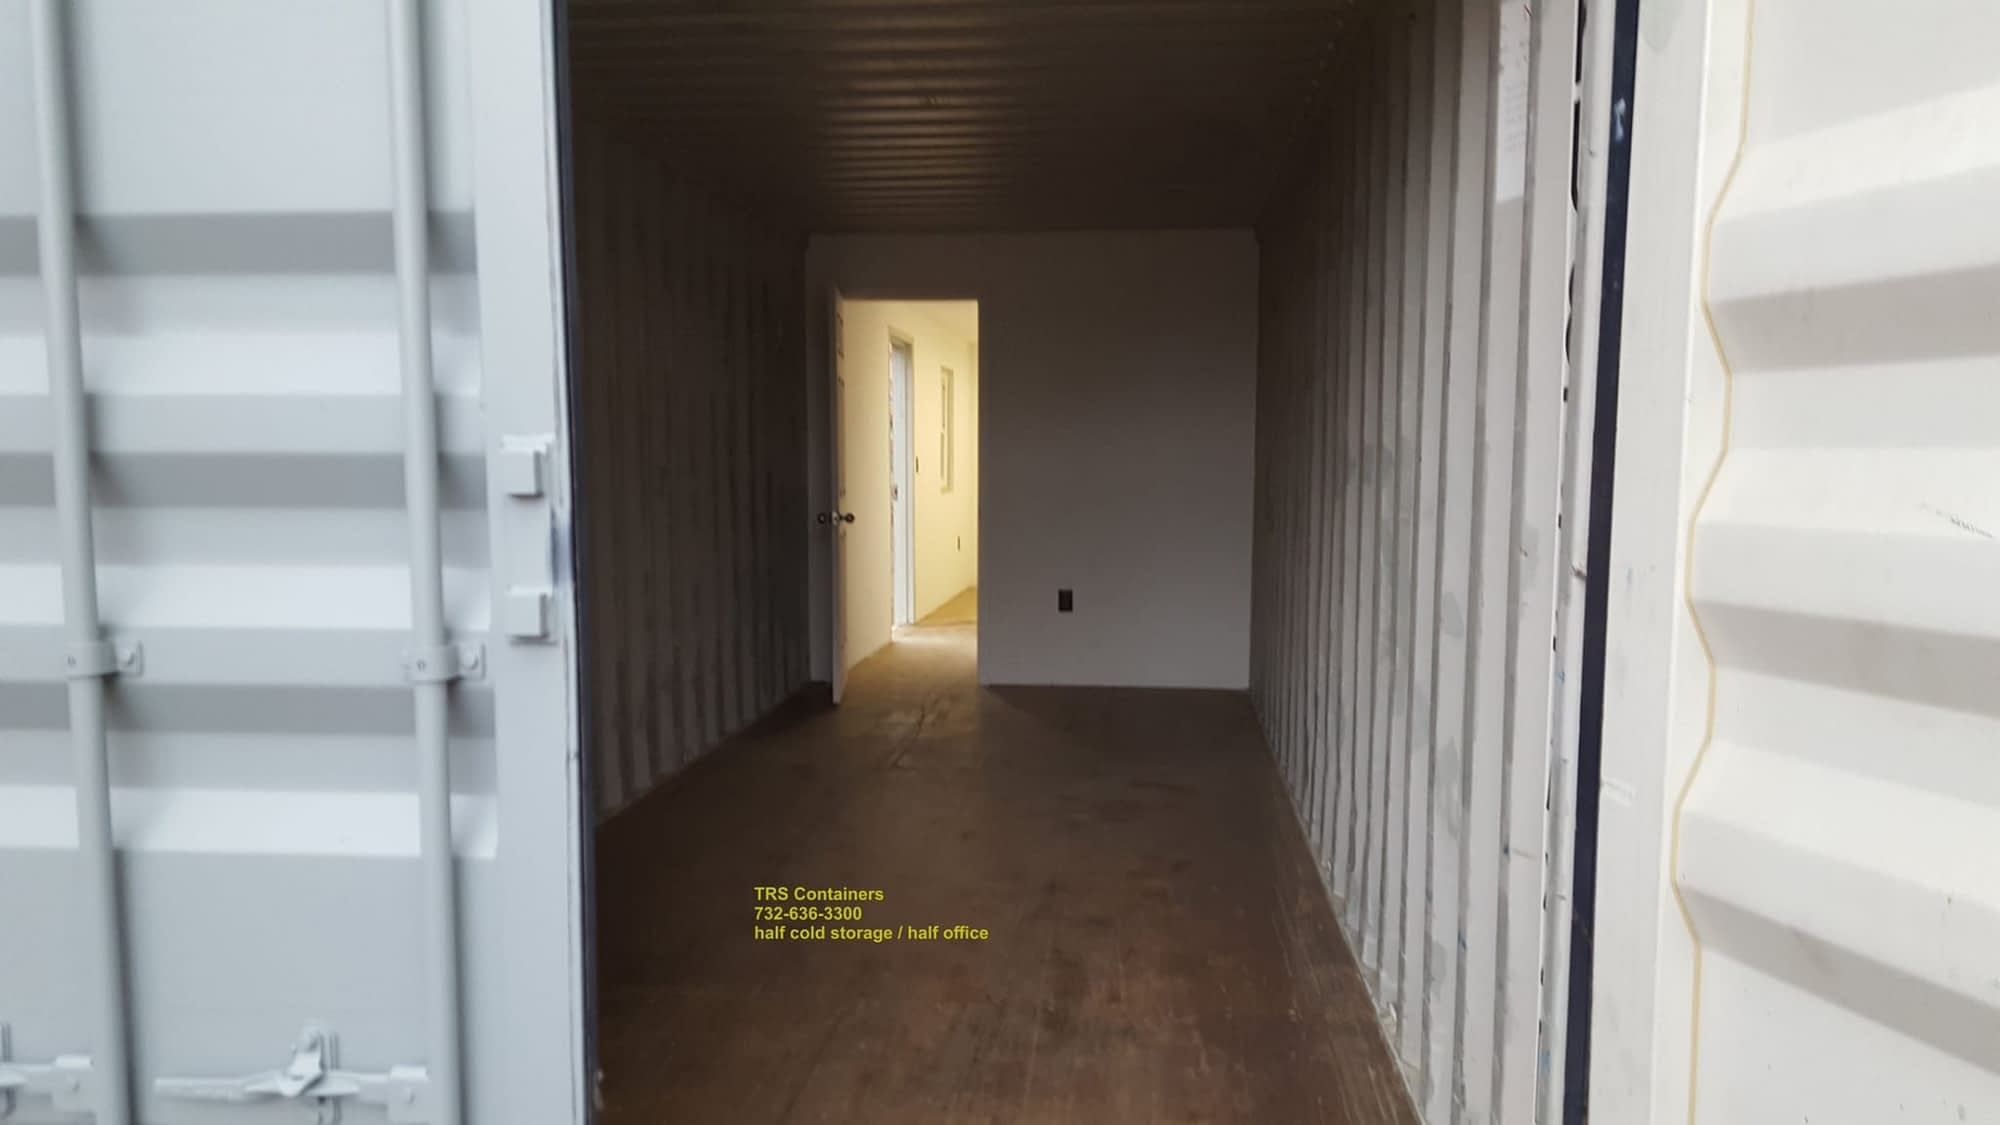 TRS sells and rents half office and half cold storage steel container space